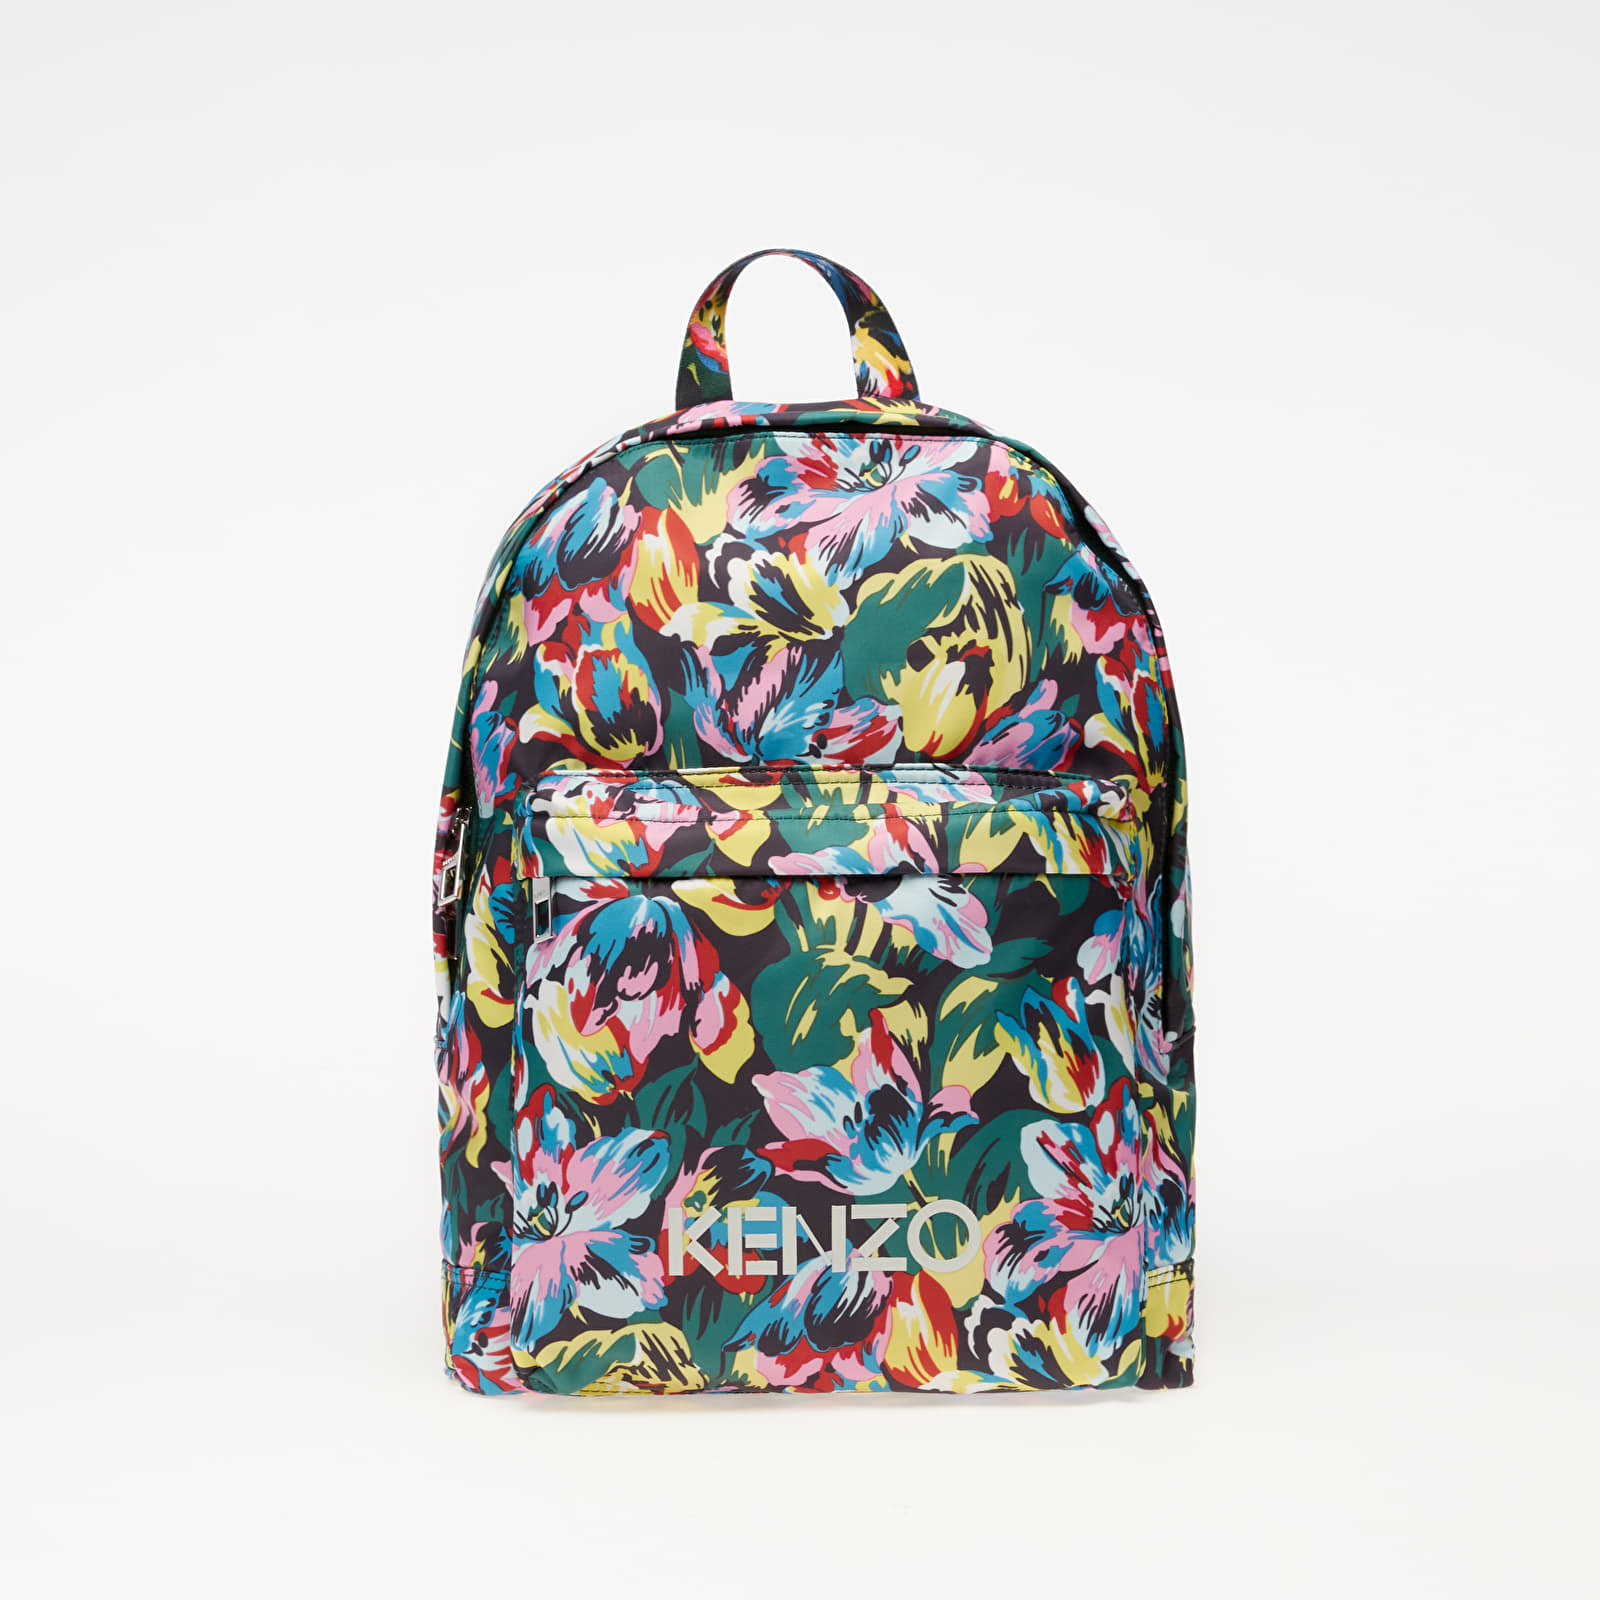 Backpacks KENZO x Vans Backpack Black